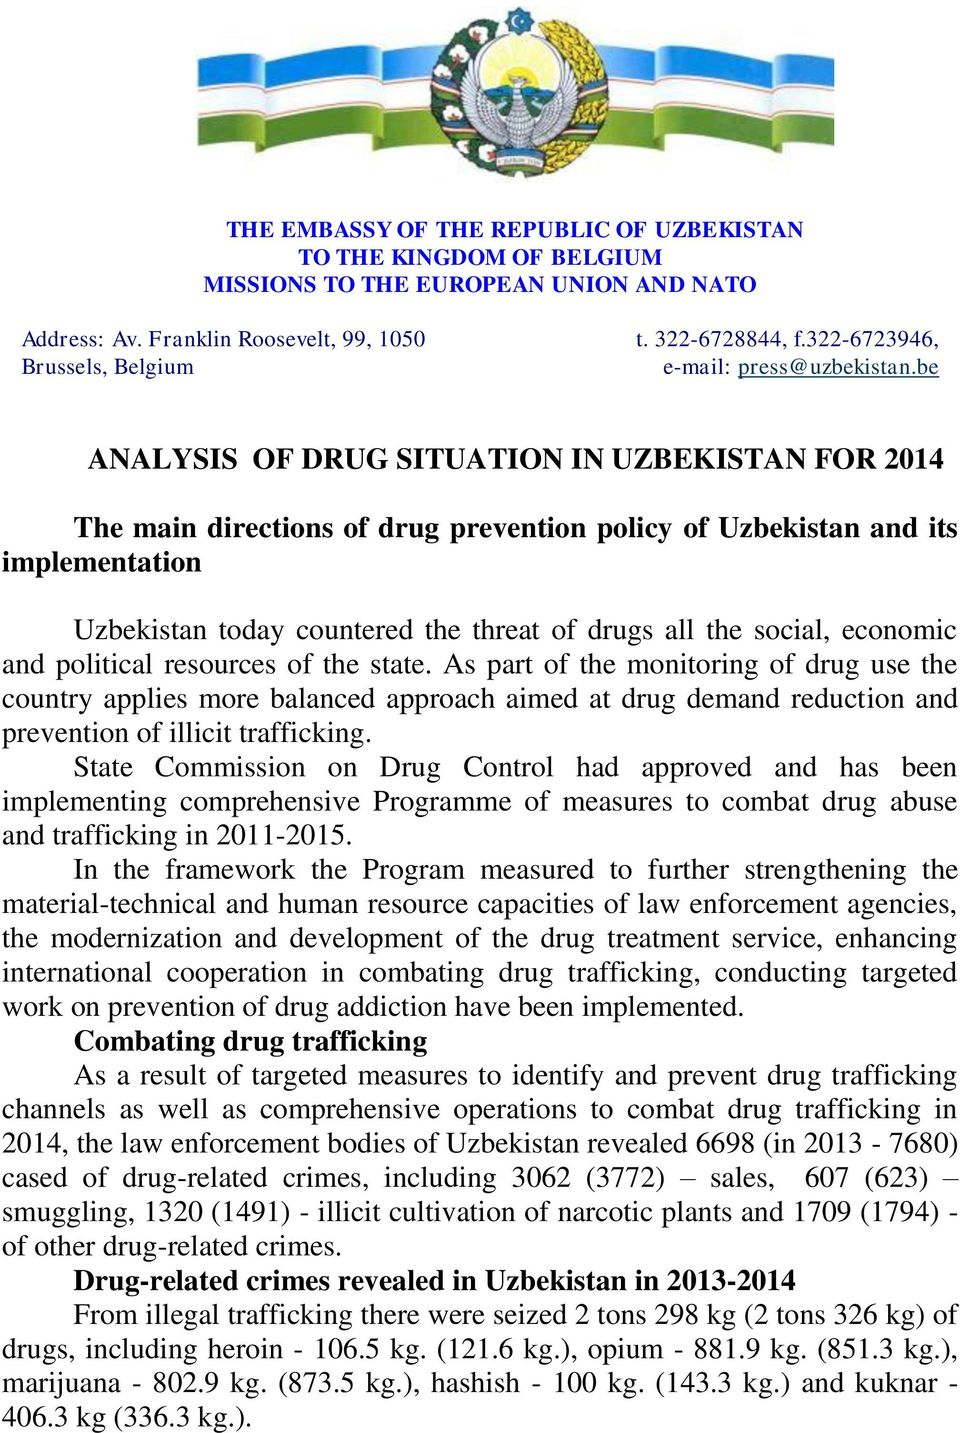 be ANALYSIS OF DRUG SITUATION IN UZBEKISTAN FOR 2014 The main directions of drug prevention policy of Uzbekistan and its implementation Uzbekistan today countered the threat of drugs all the social,